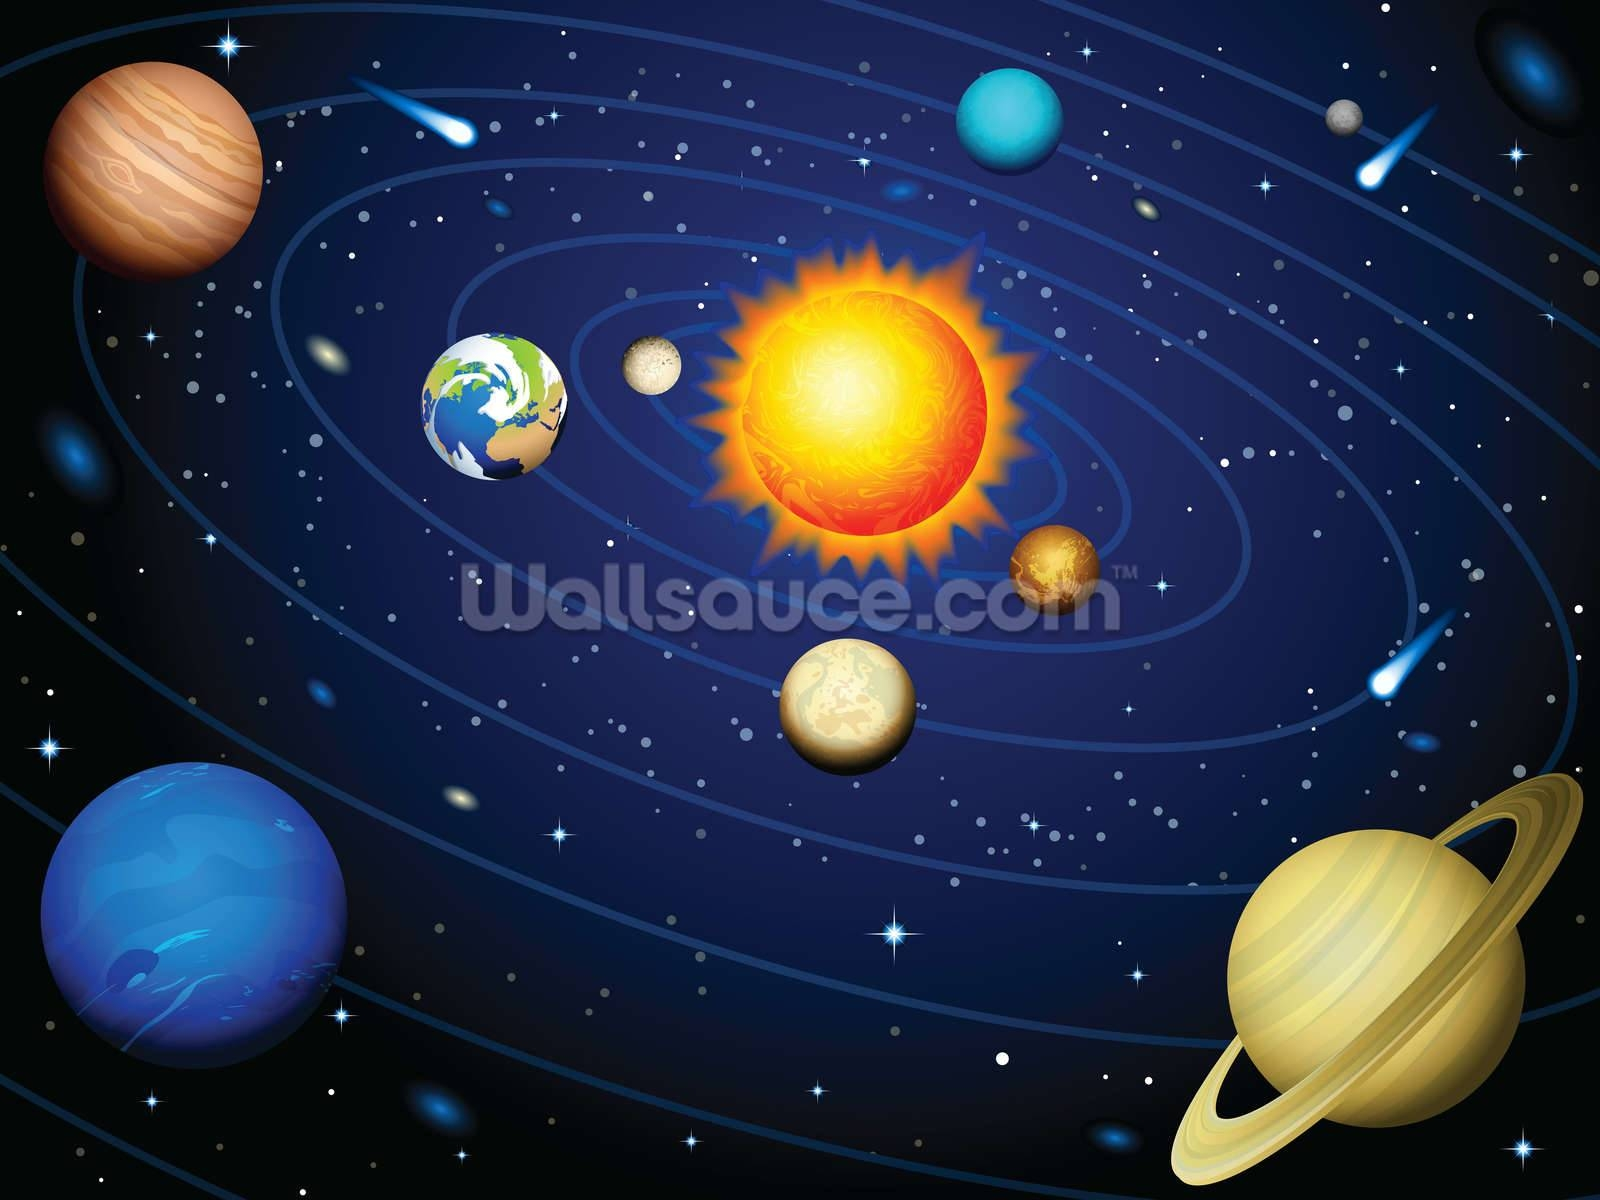 Space Wallpaper & Wall Murals | Wallsauce Inside Most Recently Released Solar System Wall Art (View 19 of 25)